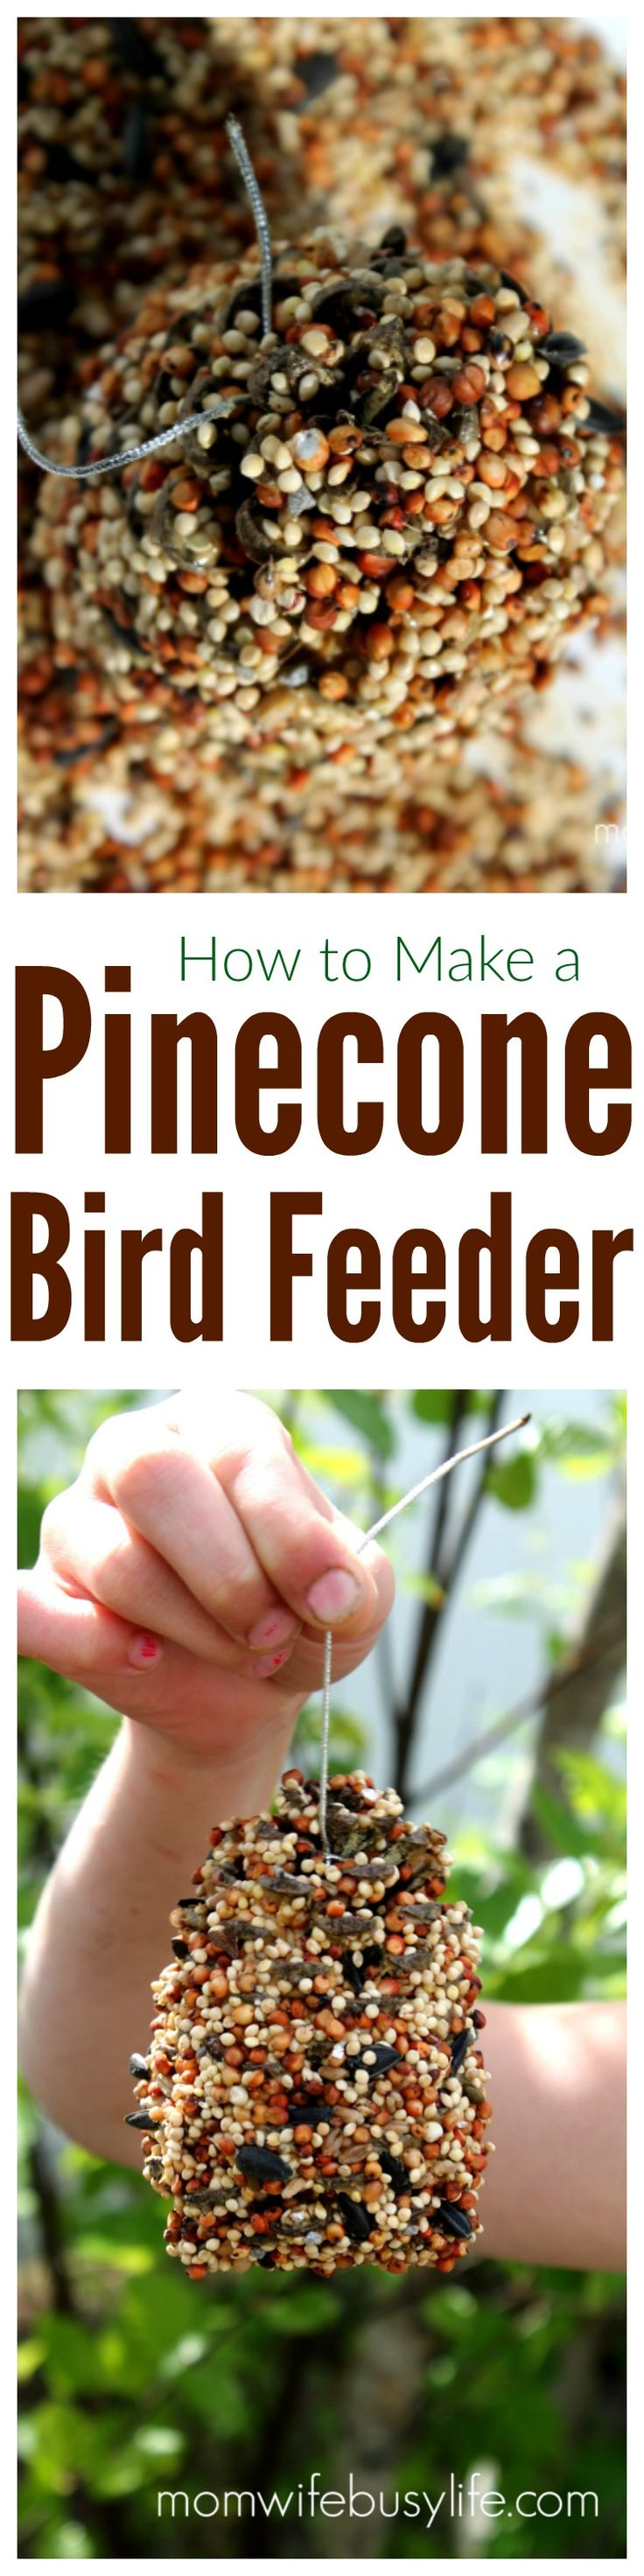 How to Make a Pinecone Bird Feeder with Peanut Butter | Homemade Pinecone Bird Feeder | Piecone Bird Feeder Craft for Kids